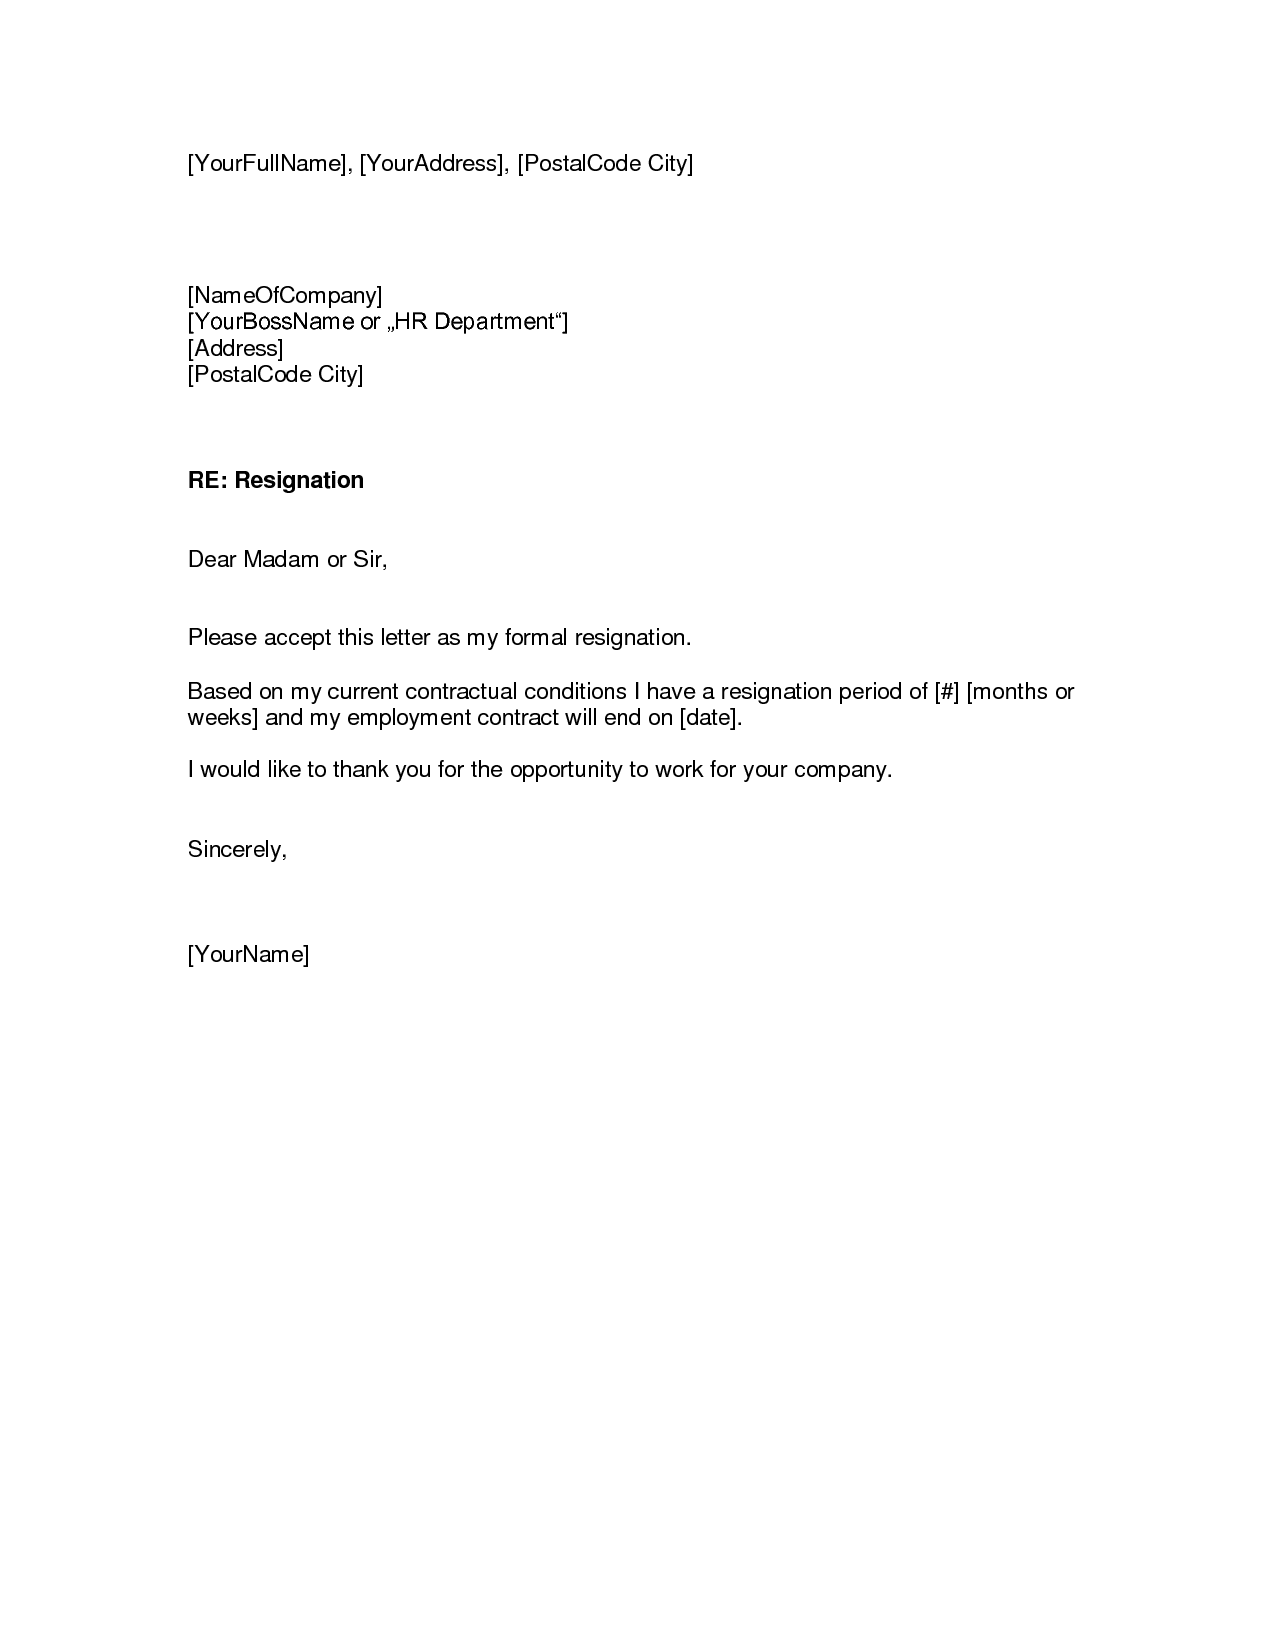 resignation letter format contractual conditions related simple time out ending employment department business company best free home design idea